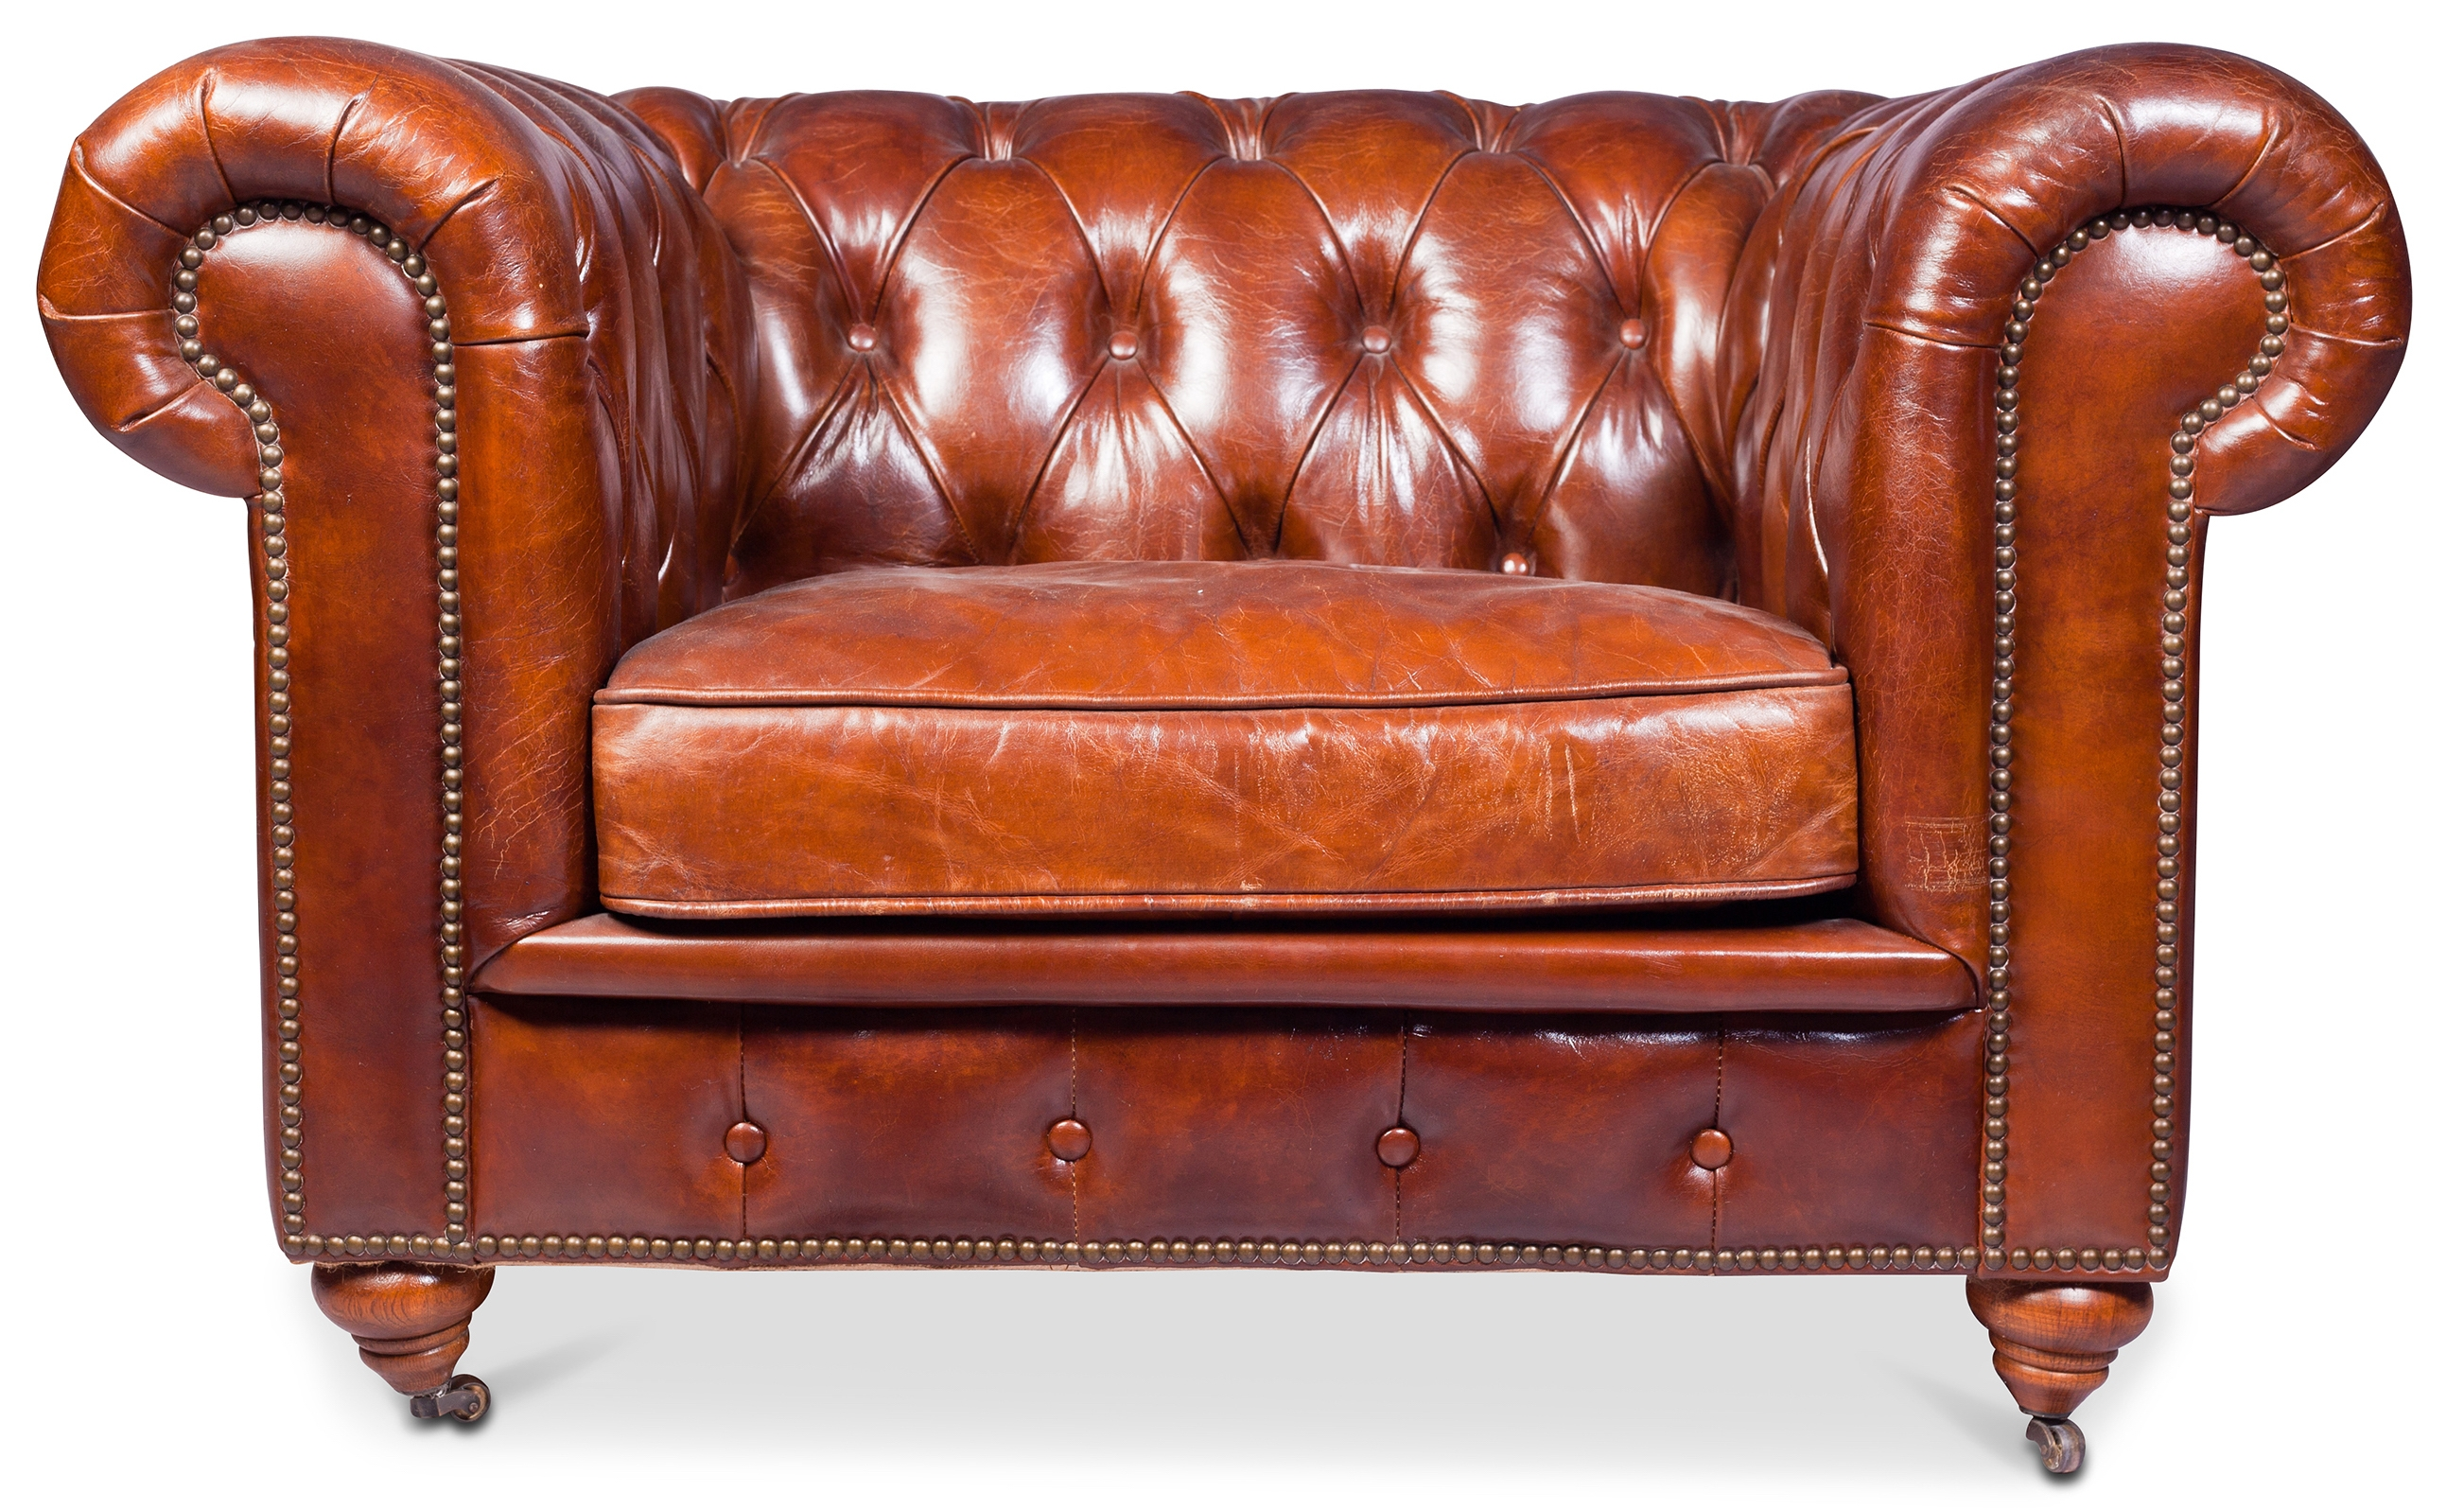 Fauteuils Chesterfield Cuir Fauteuil Chesterfield Cuir Marron Vintage Lower